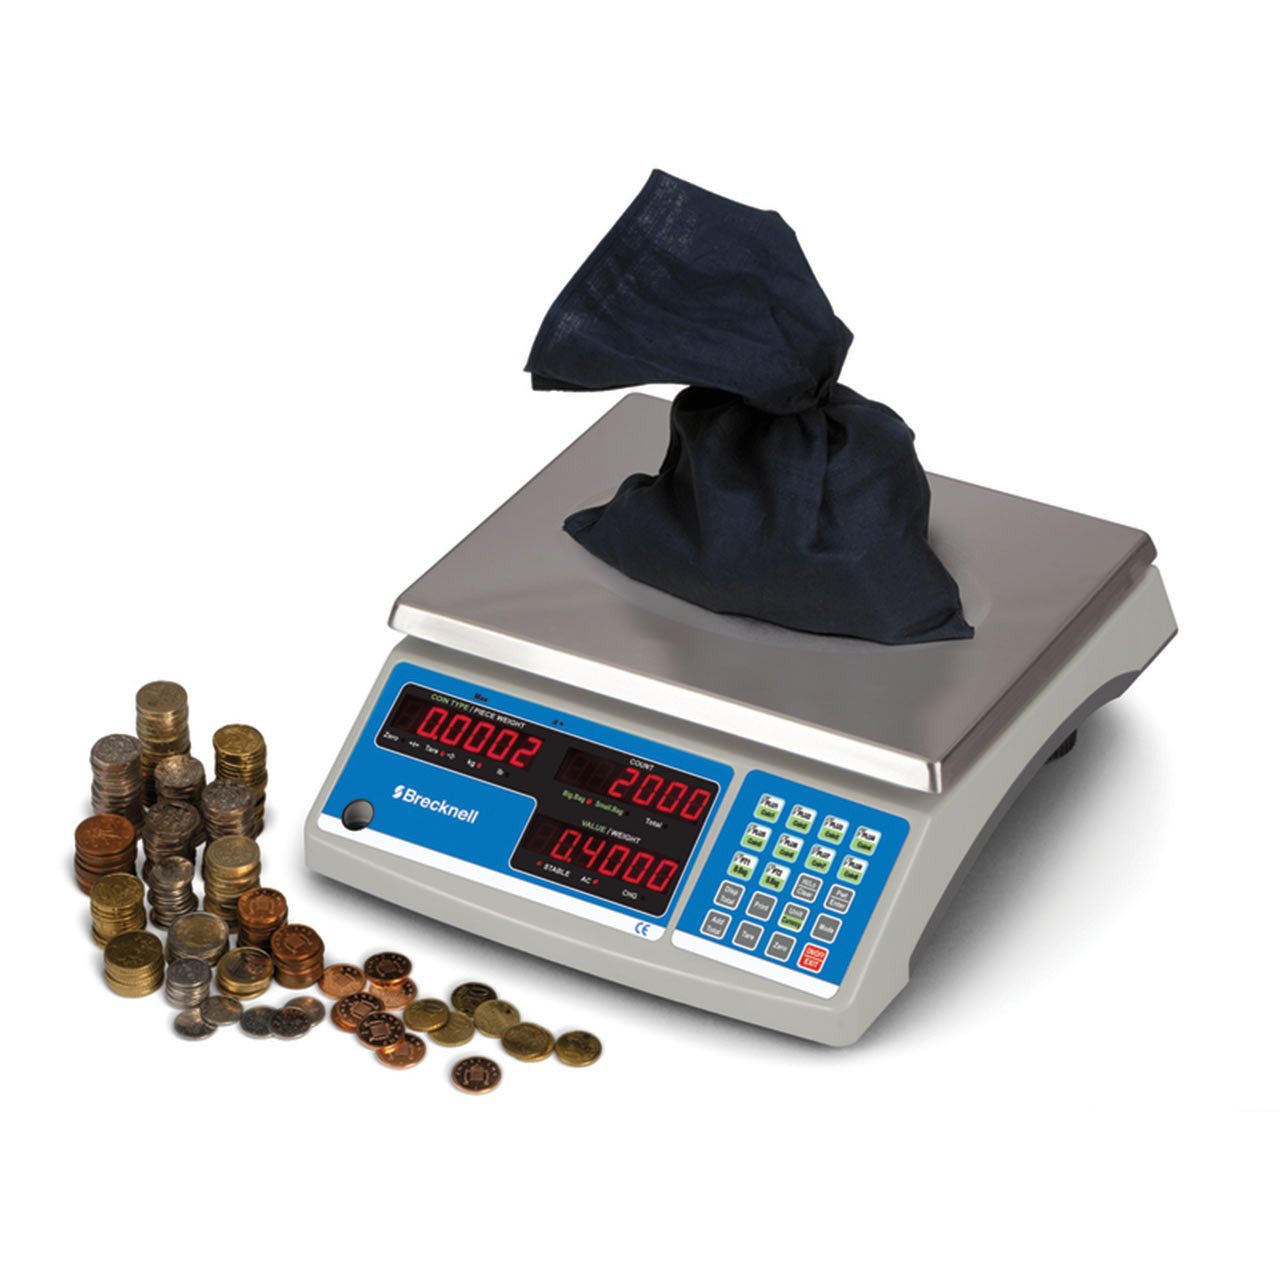 High Accuracy Counting Scale (60 lb model) can be used to count coins